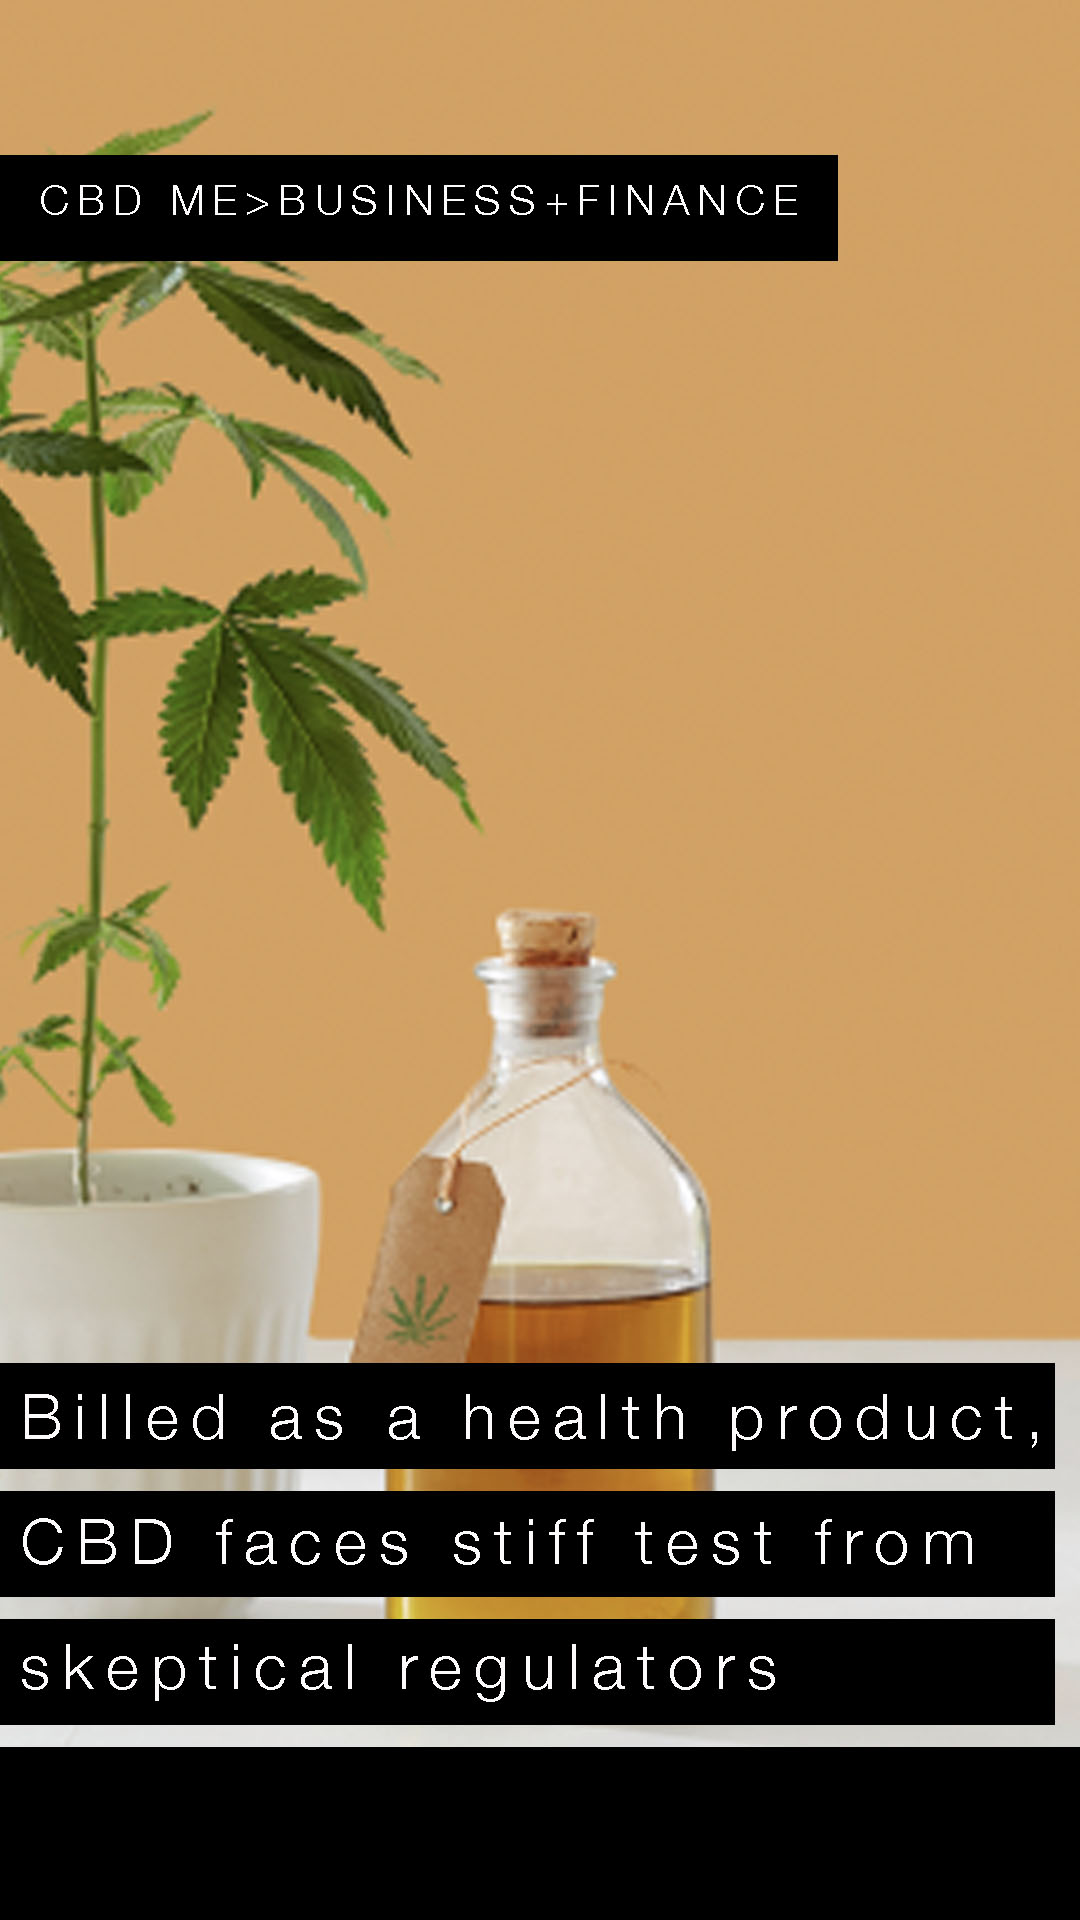 Billed as a health product, CBD faces stiff test from skeptical regulators | YAHOO FINANCE